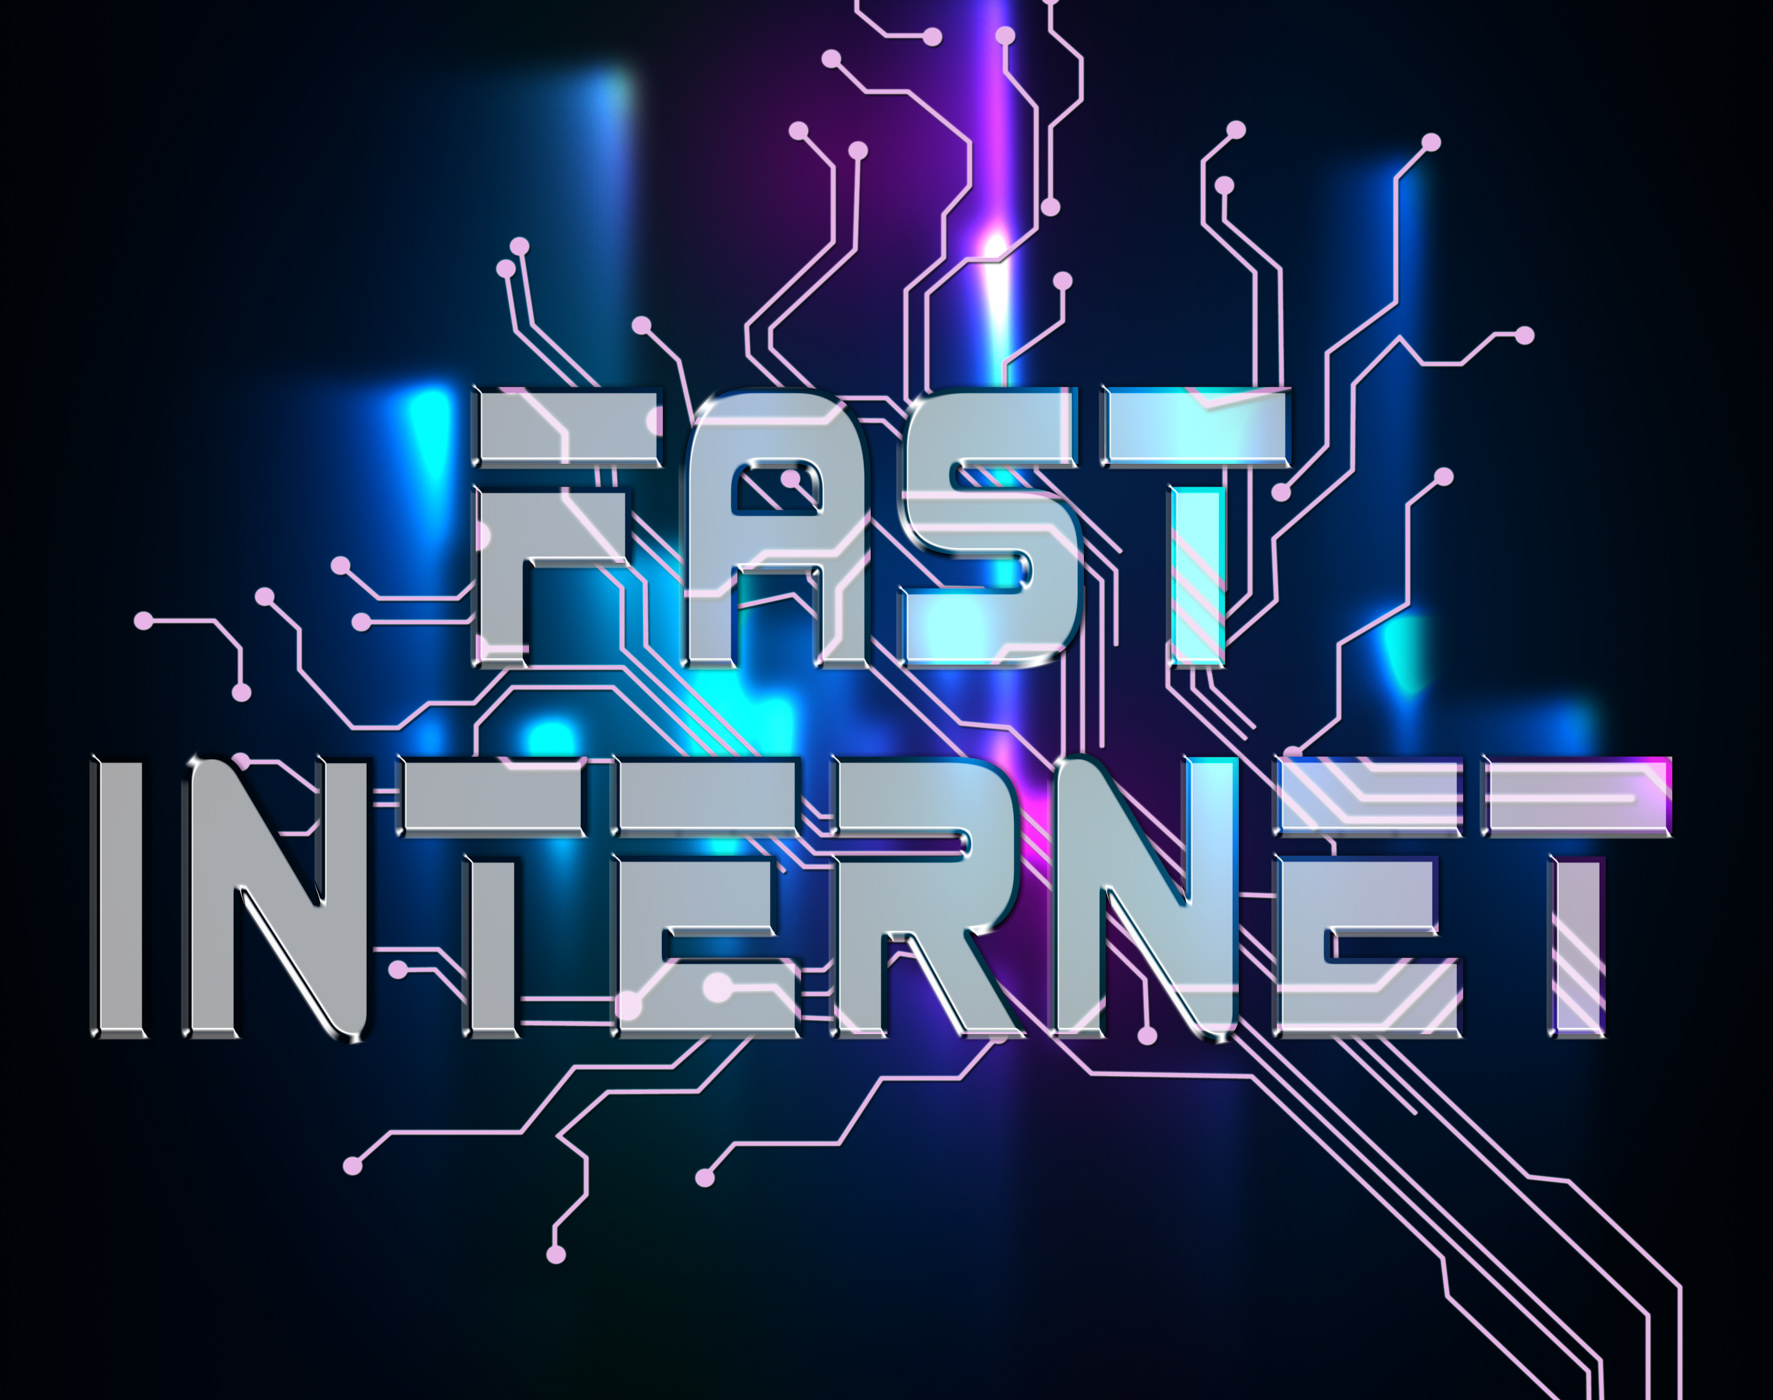 Fast internet means high speed and accelerated photo